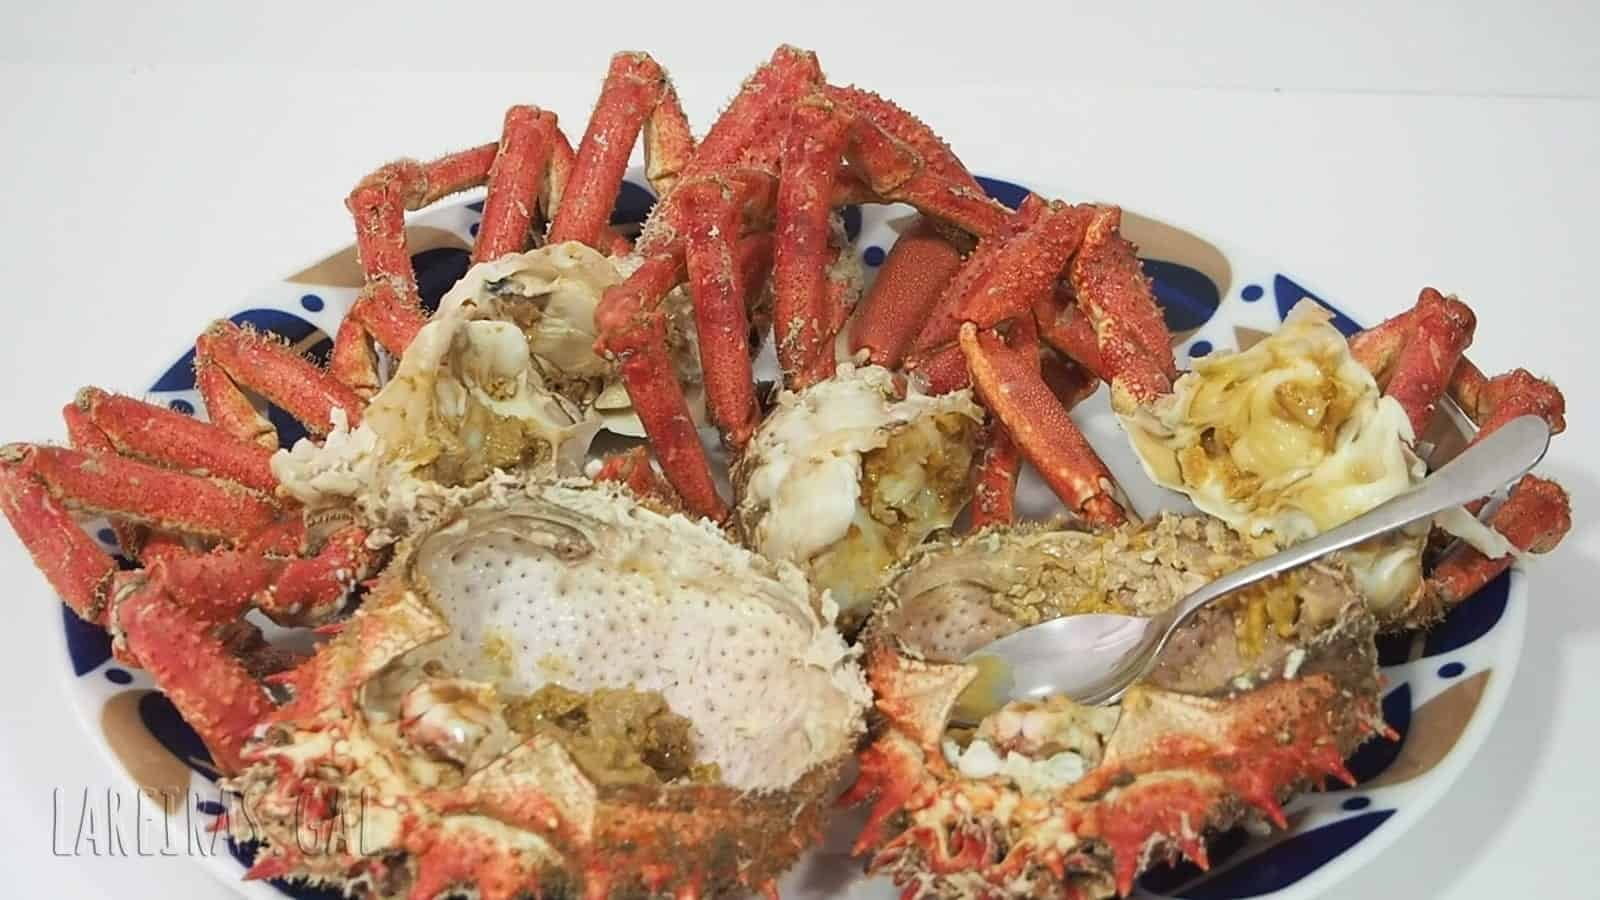 Boiled spider crab